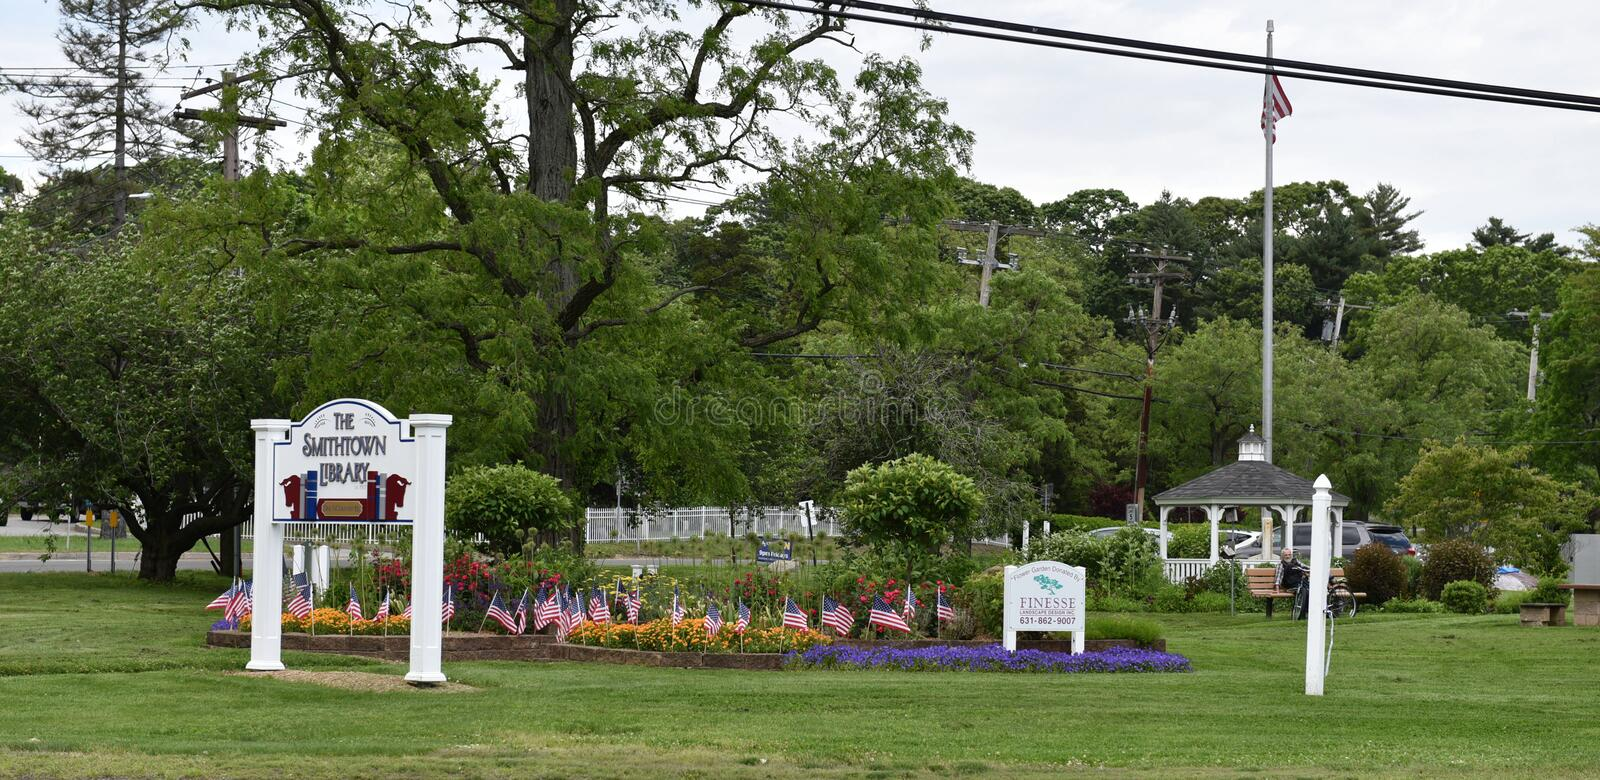 Smithtown new york state usa historical monuments. There are historical monuments in the Smithtown , NewYork state of USA , which connected with establishing of royalty free stock photography